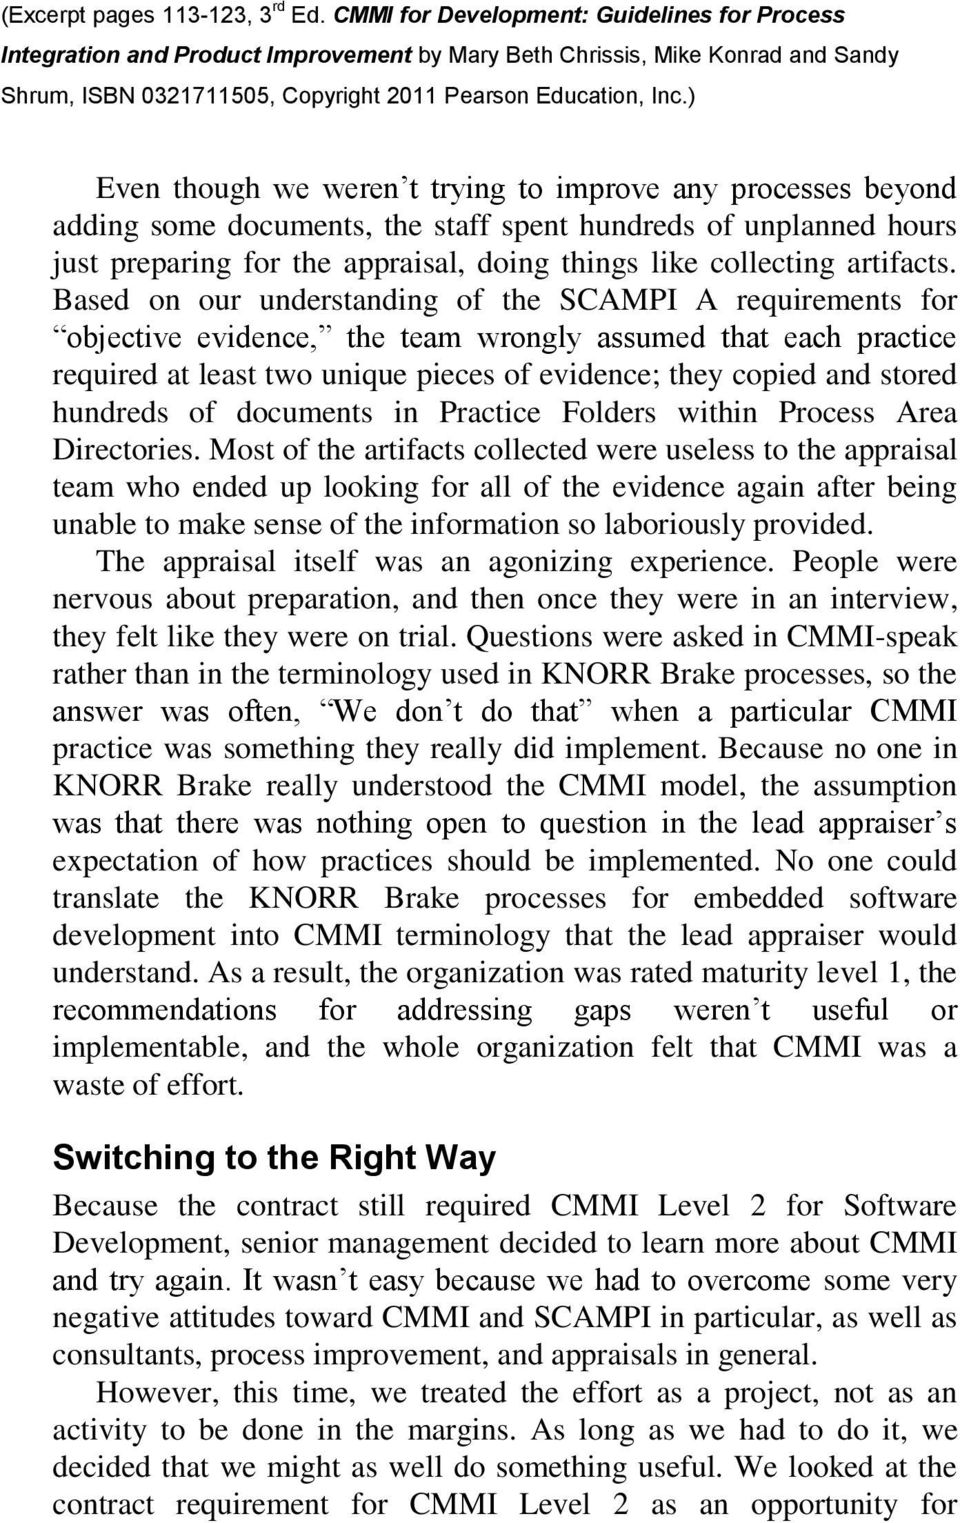 Based on our understanding of the SCAMPI A requirements for objective evidence, the team wrongly assumed that each practice required at least two unique pieces of evidence; they copied and stored